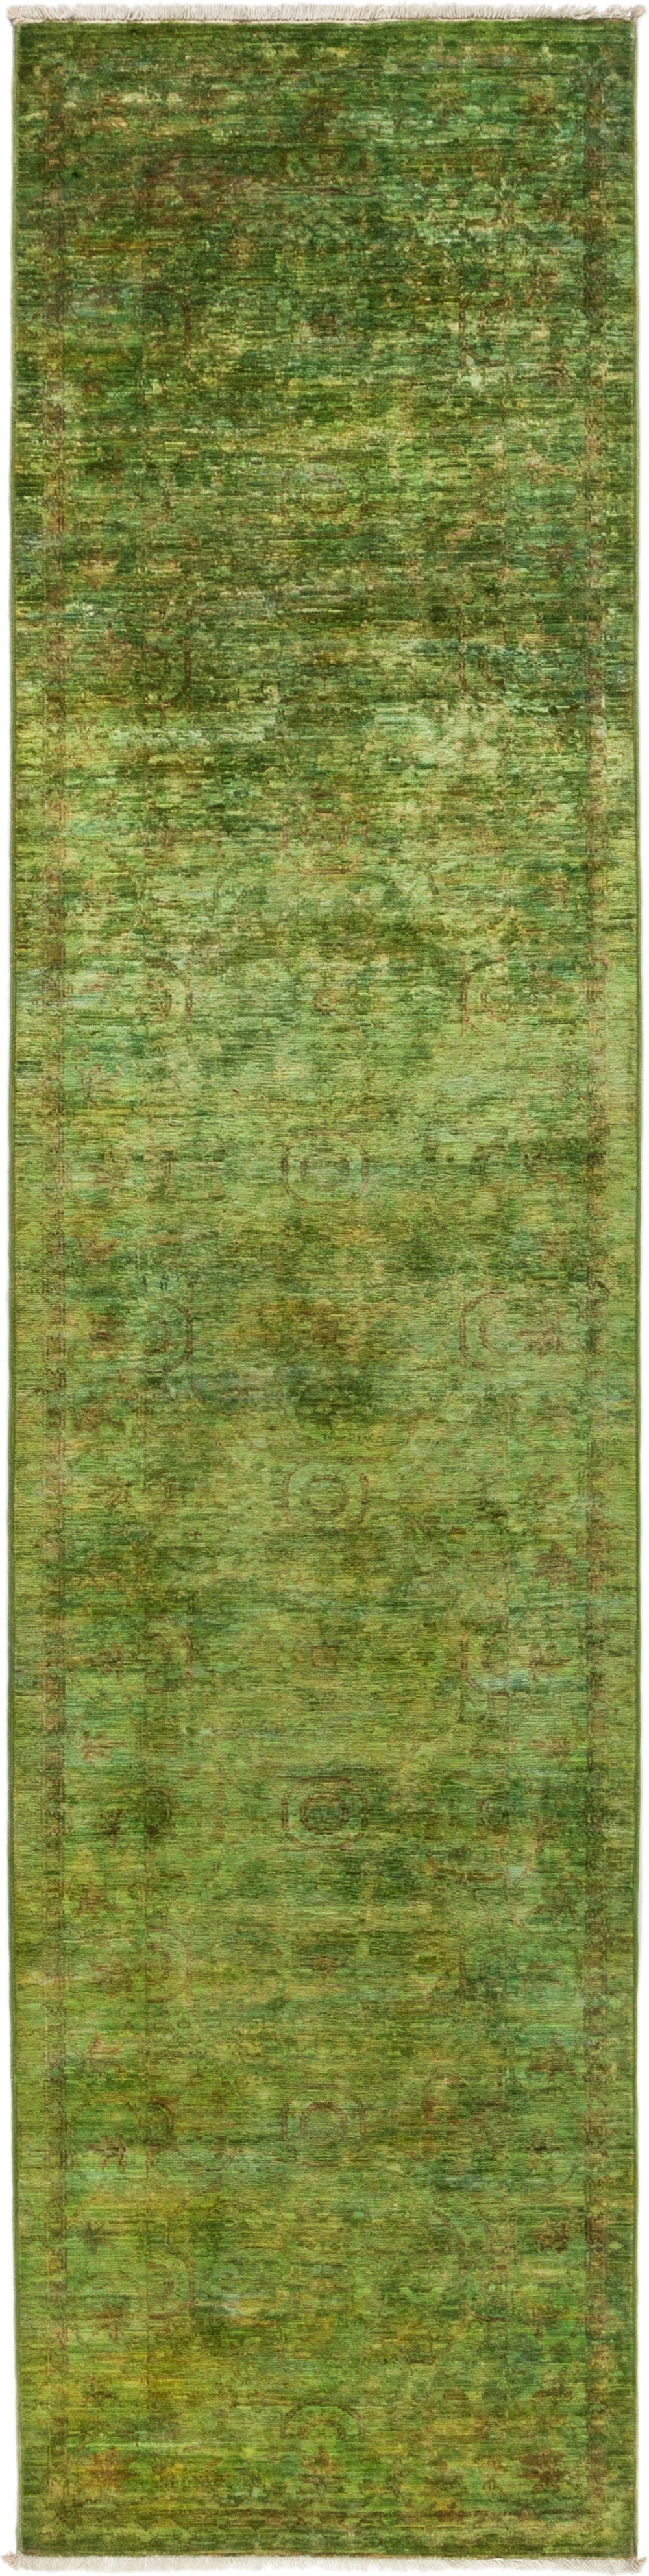 "Vibrance, Green Wool Runner Rug - 2' 5"" x 9' 9"""